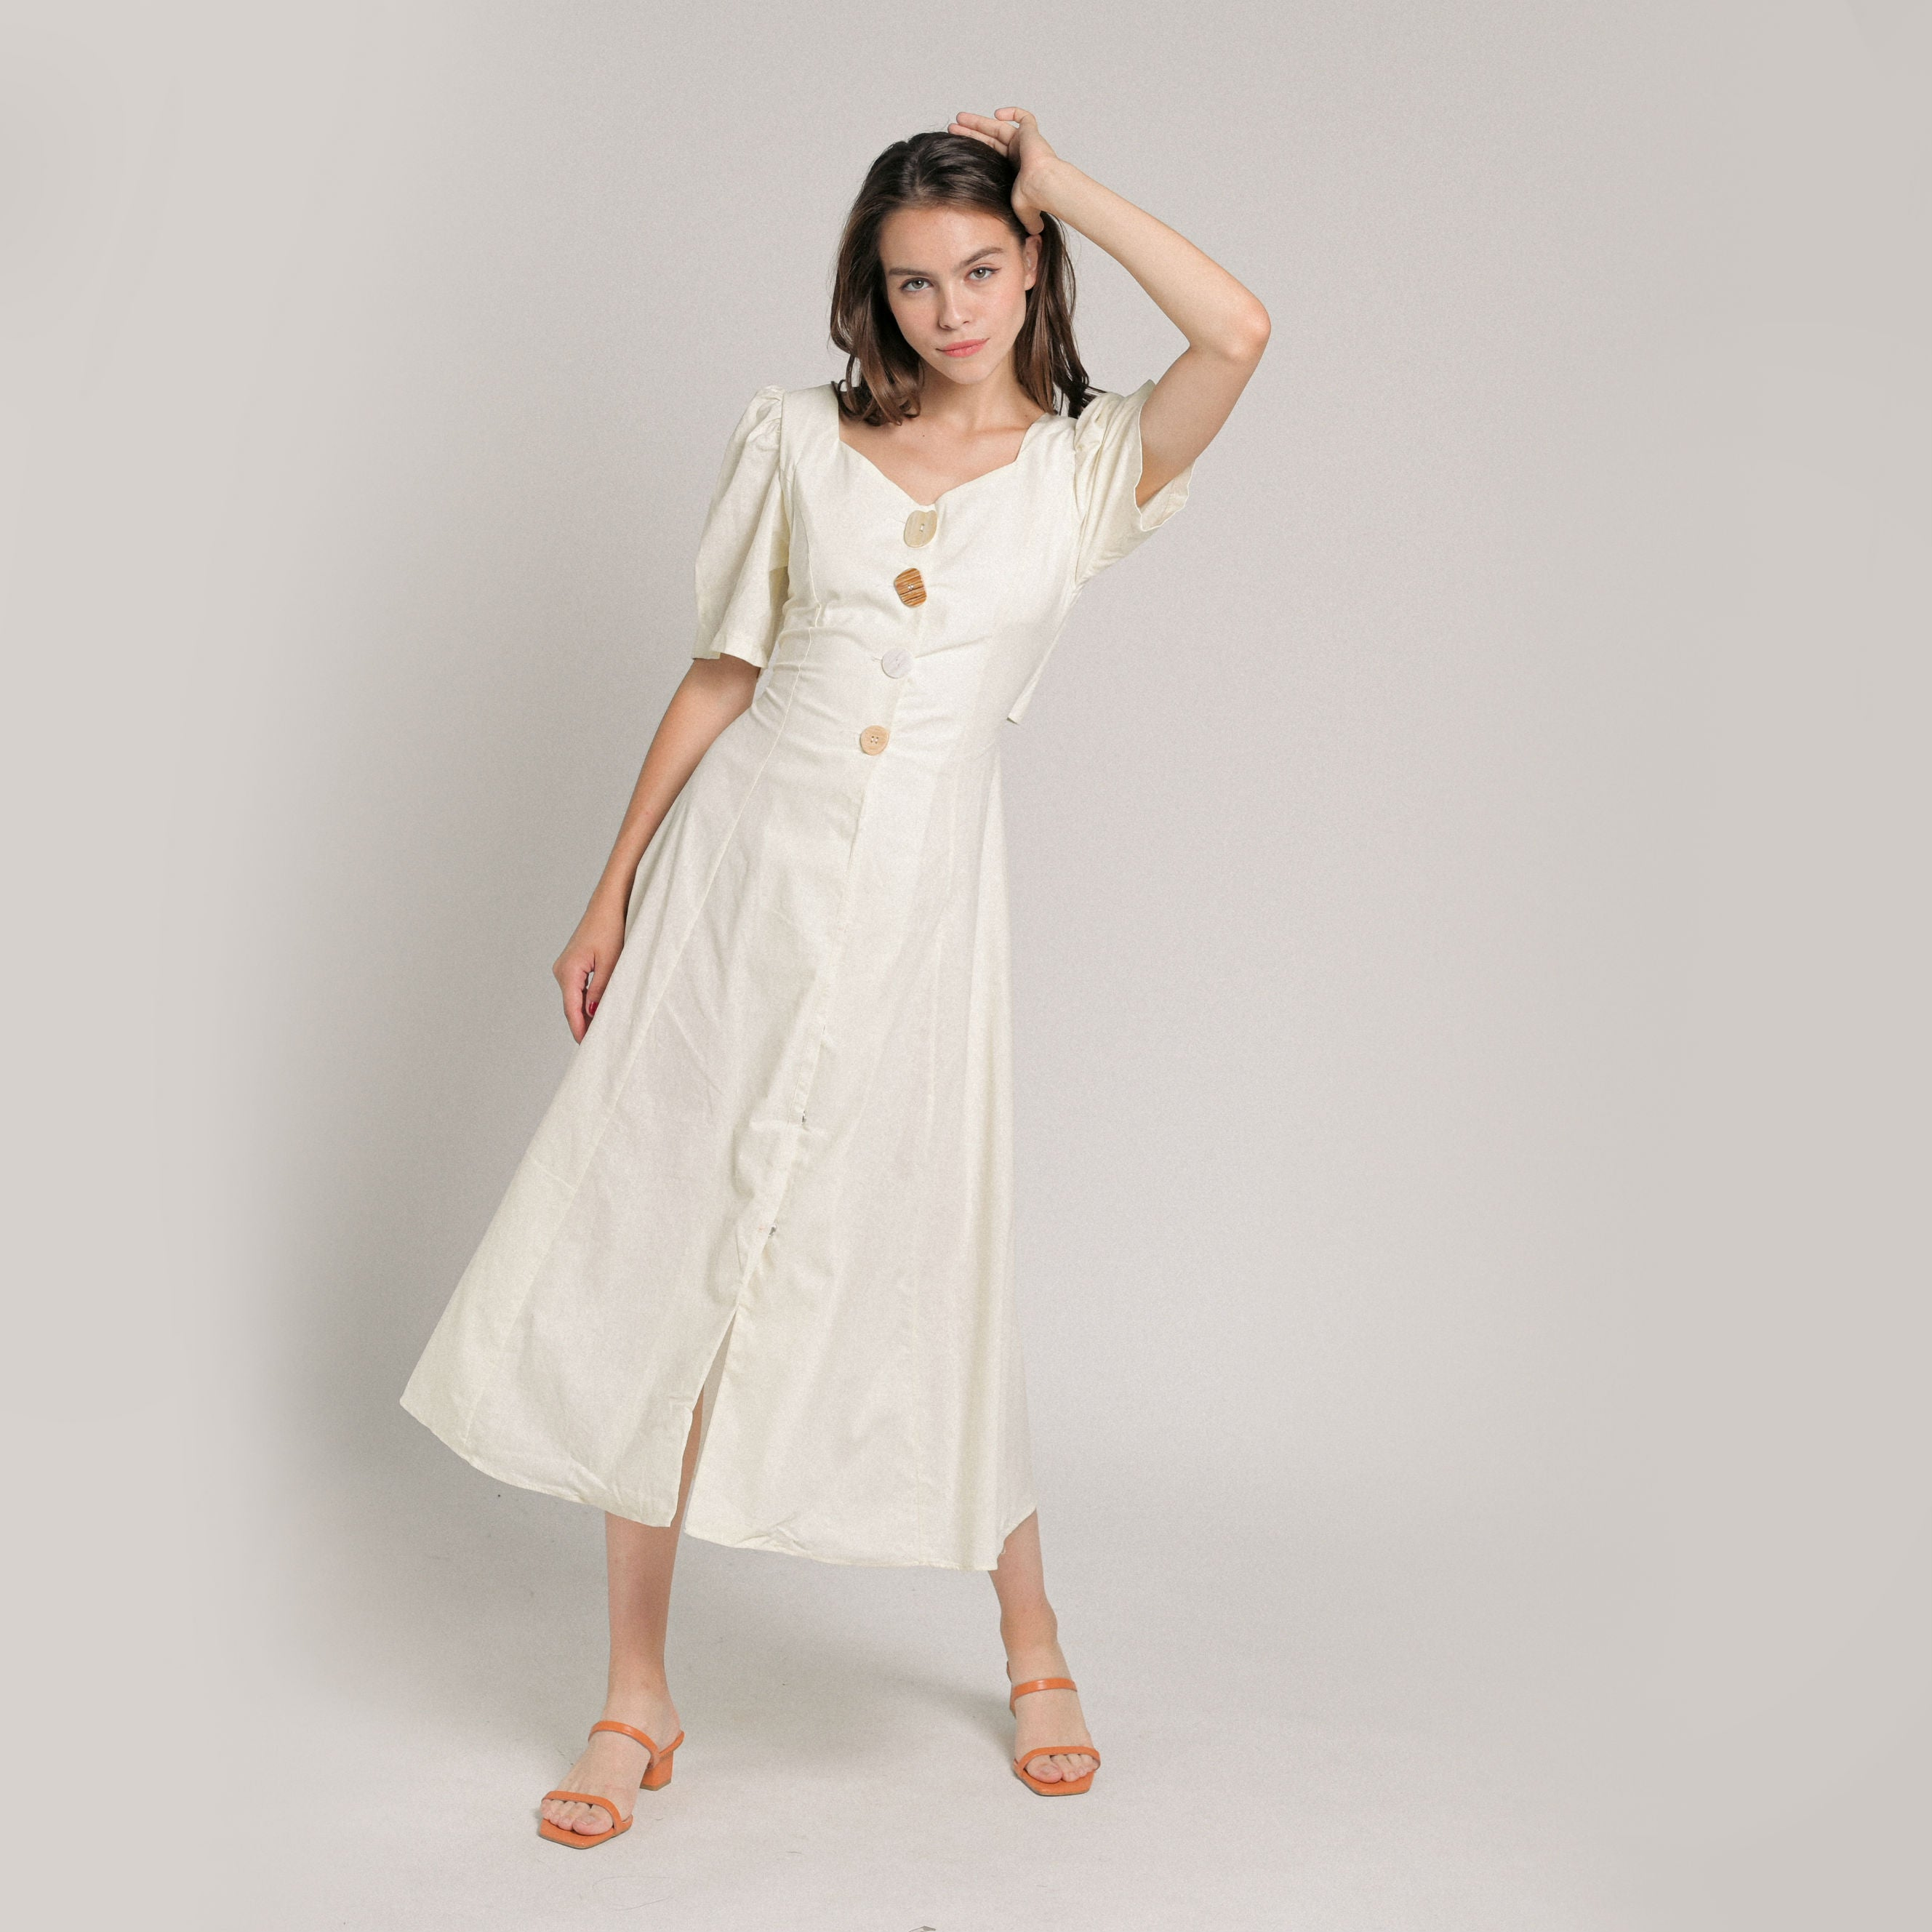 Juliette Buttoned Midi Dress - Off-White